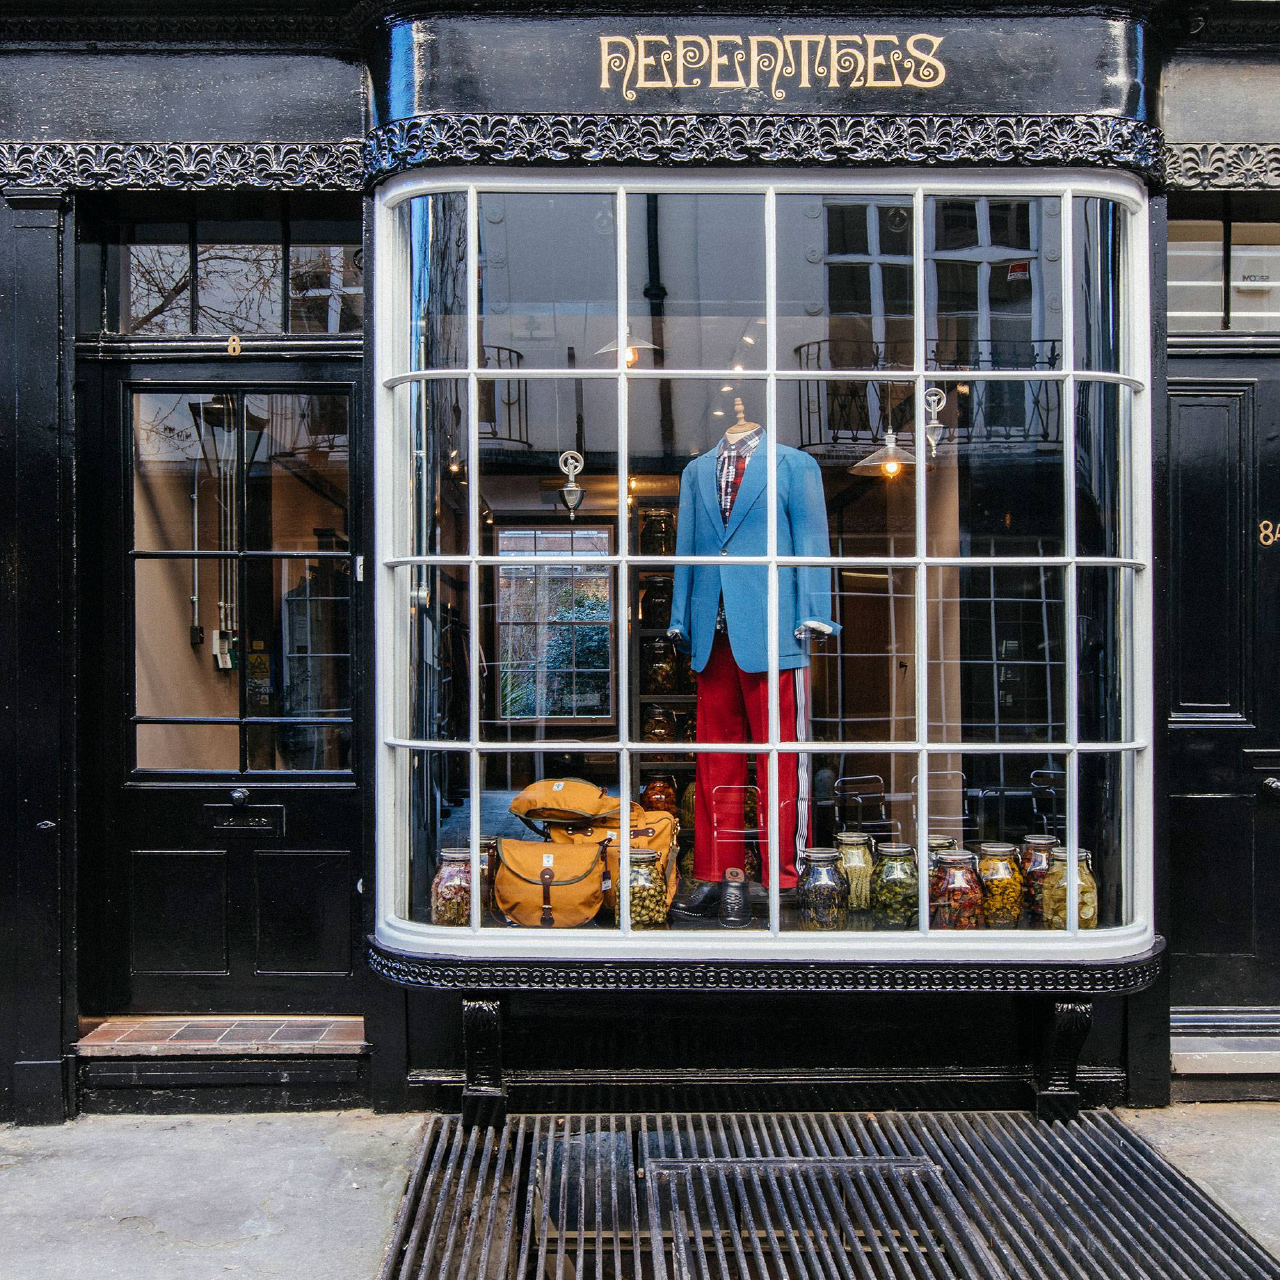 Nepenthes London Store